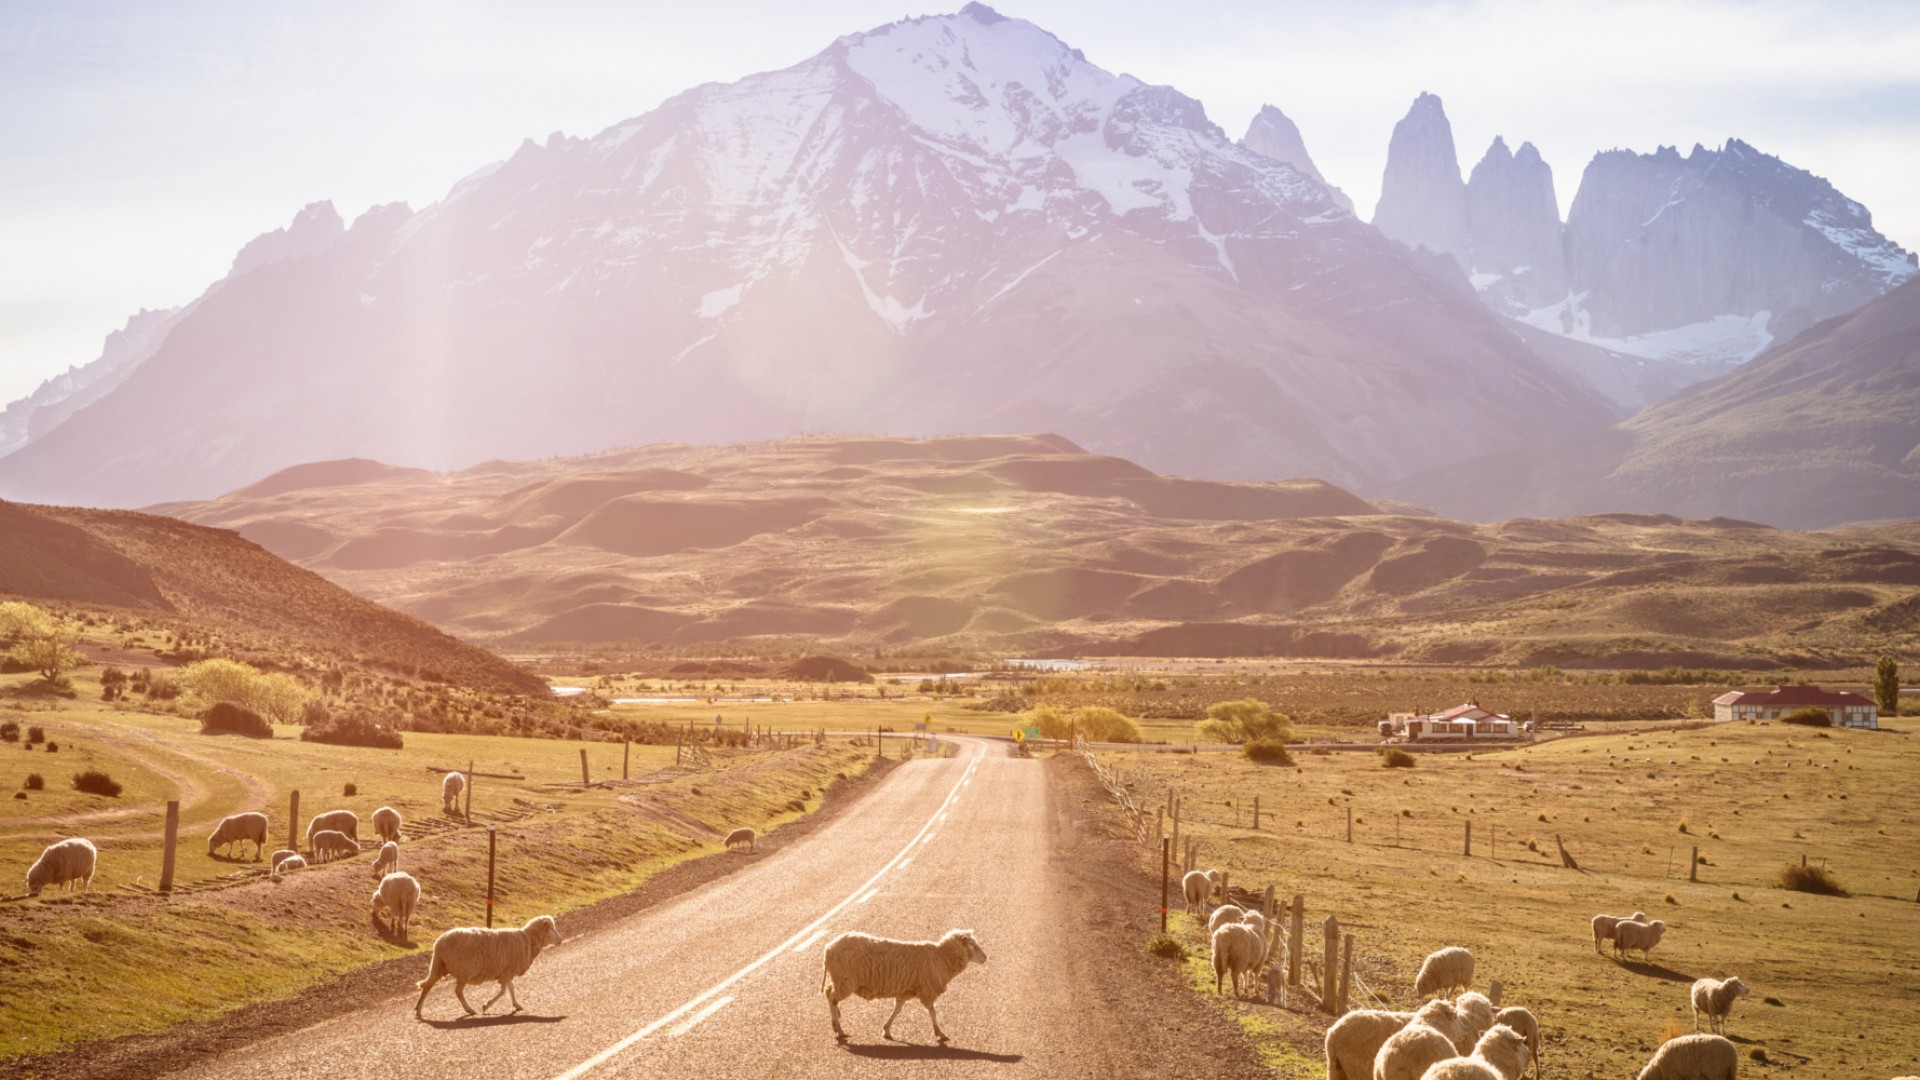 patagonia countryside with grazing sheep